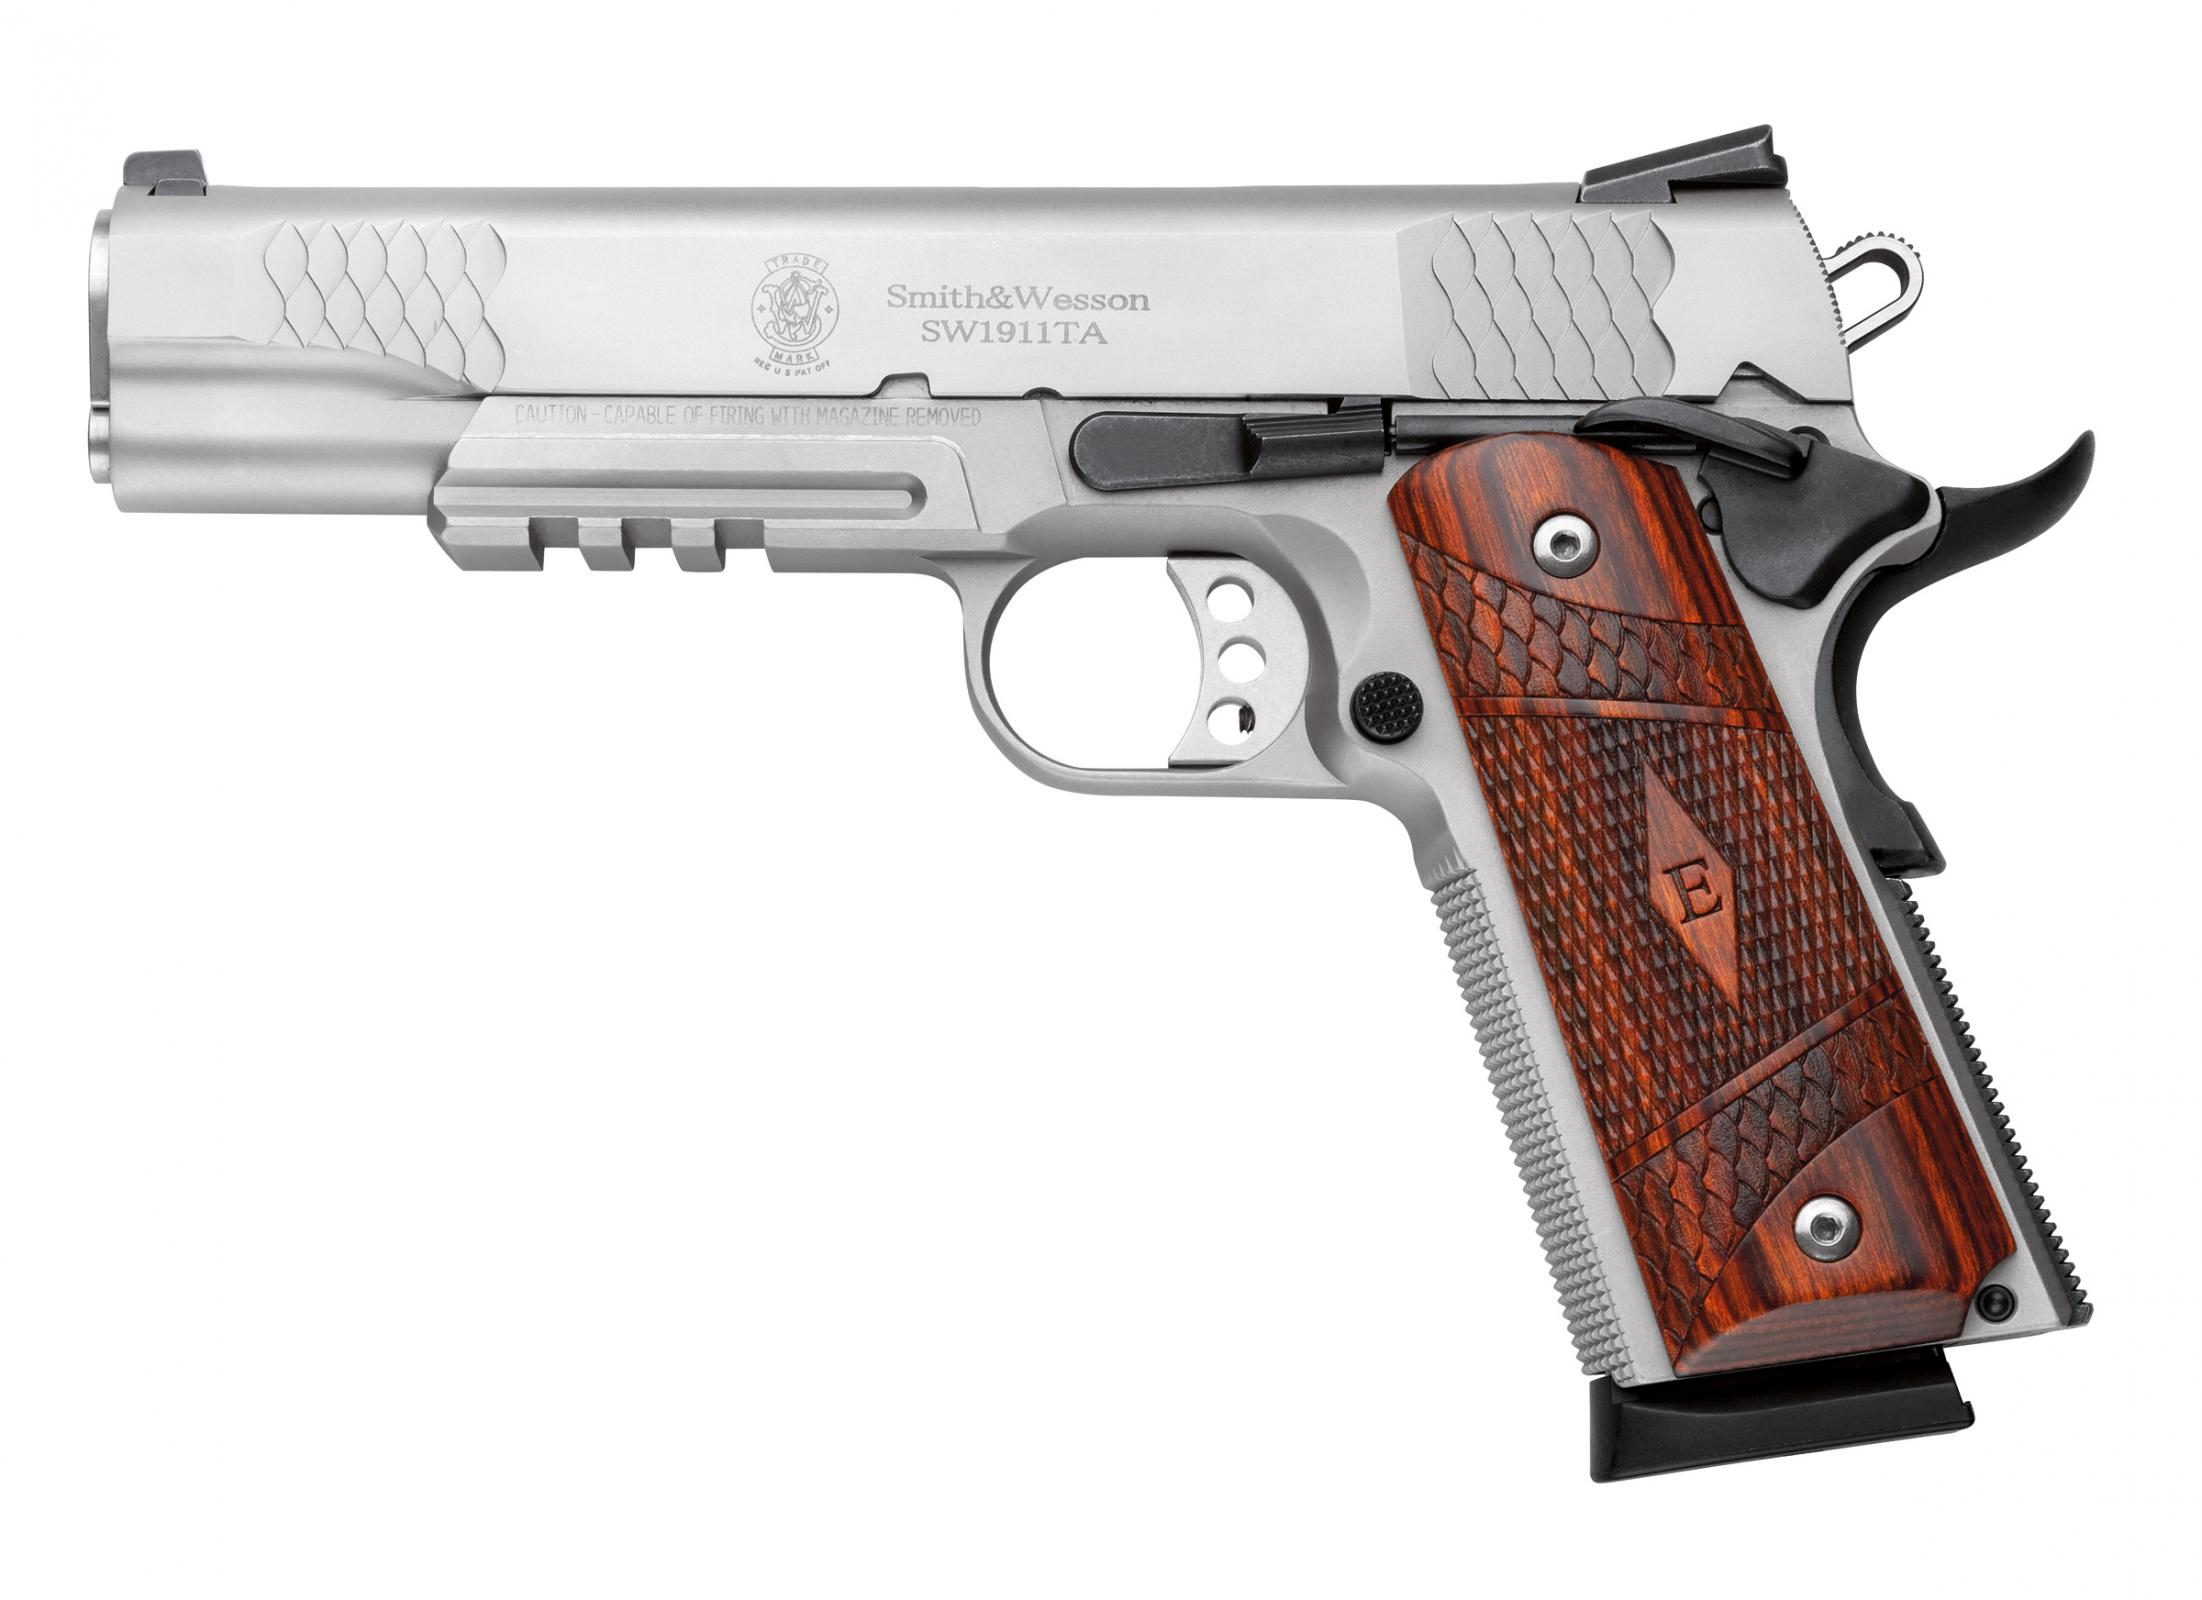 Smith and Wesson SW1911TA 45 ACP